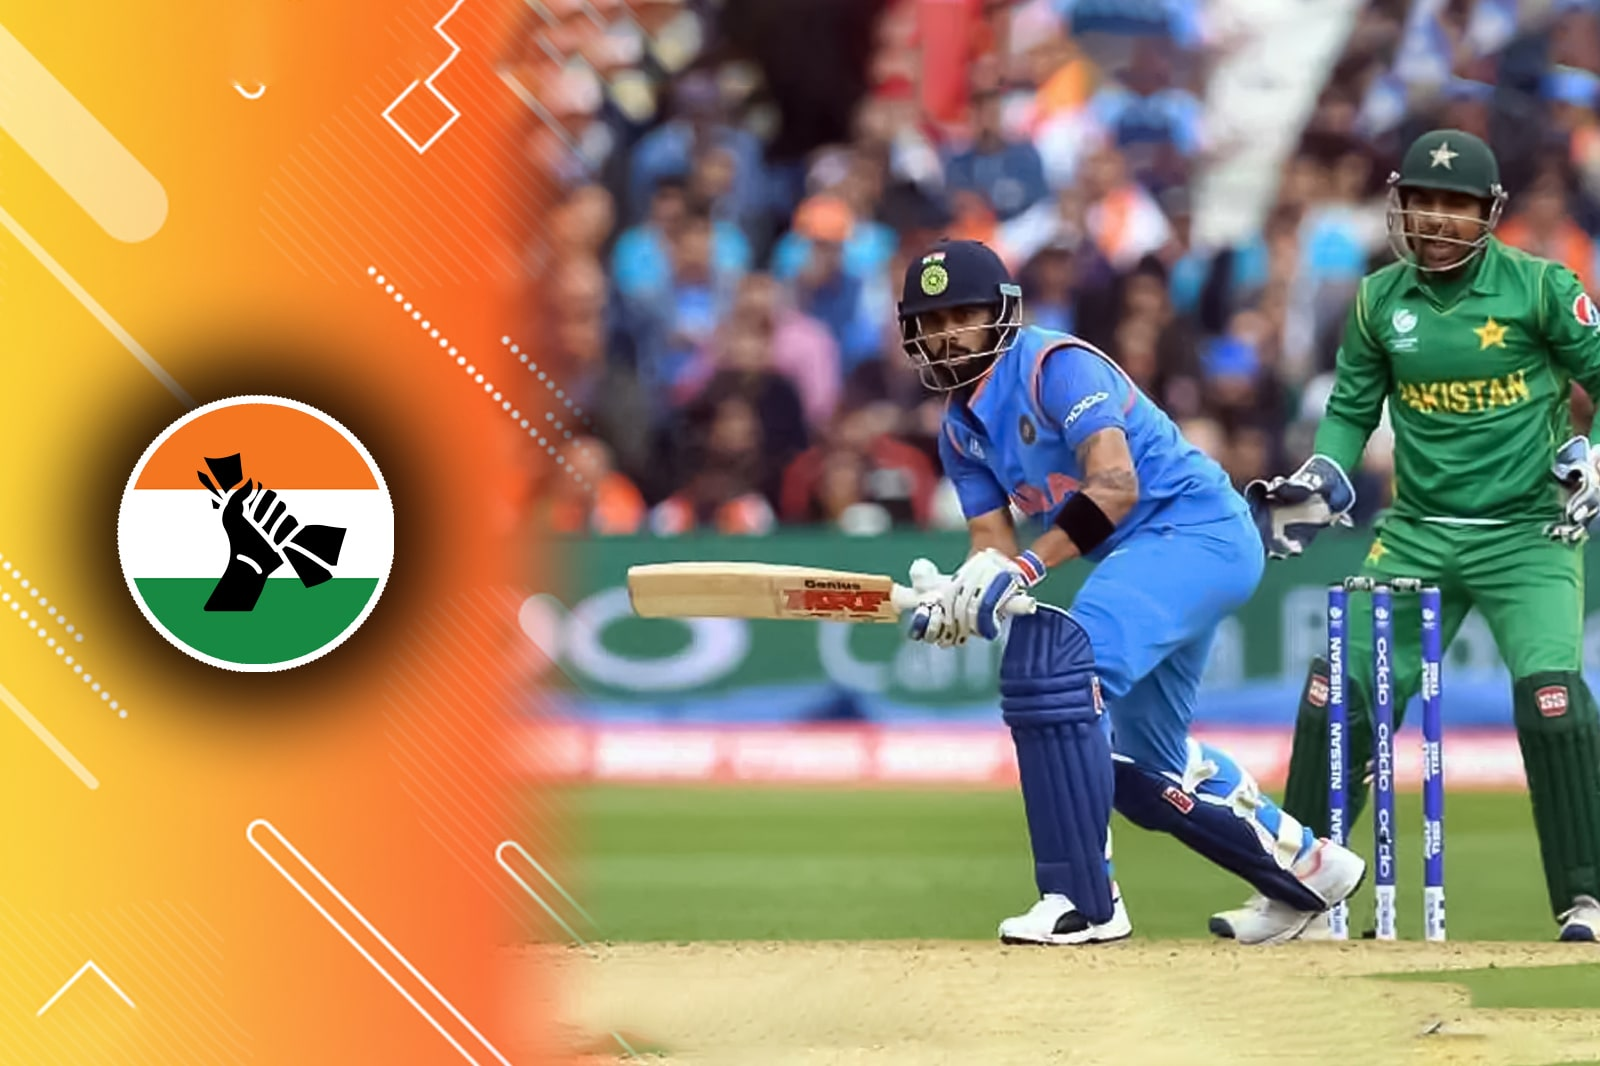 Things to Know About Cricket Betting in India